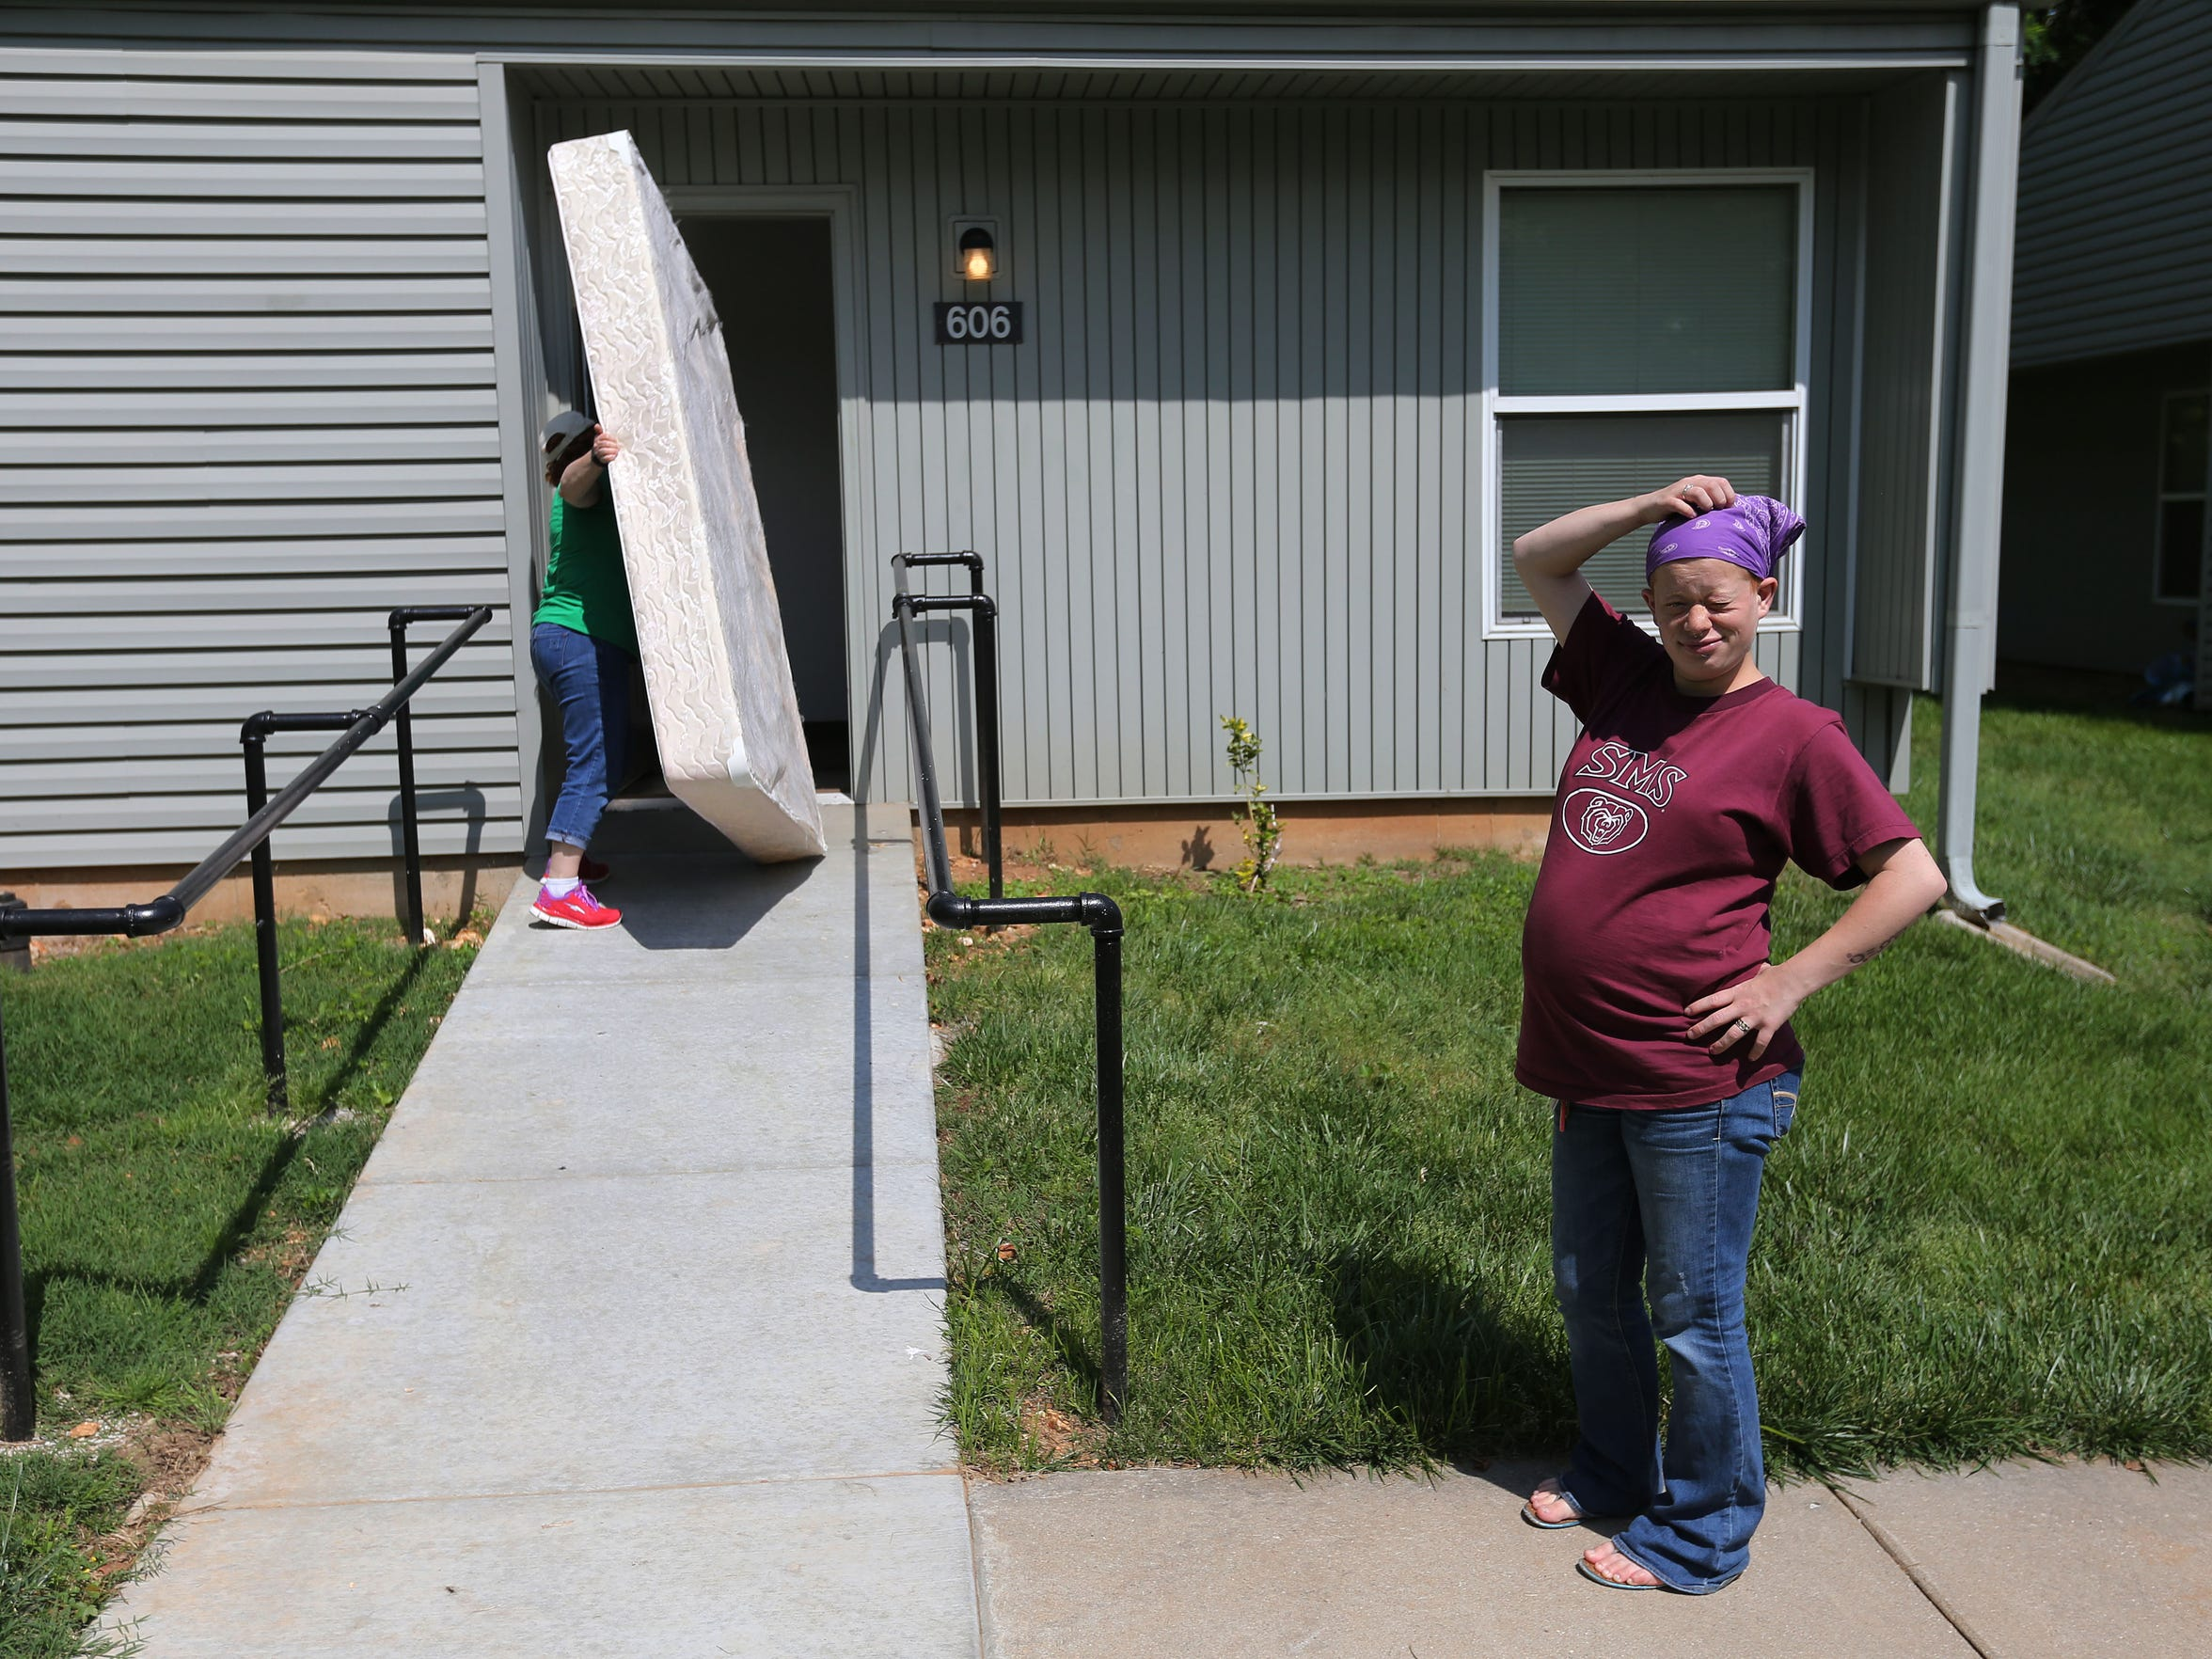 Lyzz Buford's mother carries a mattress into Lyzz's